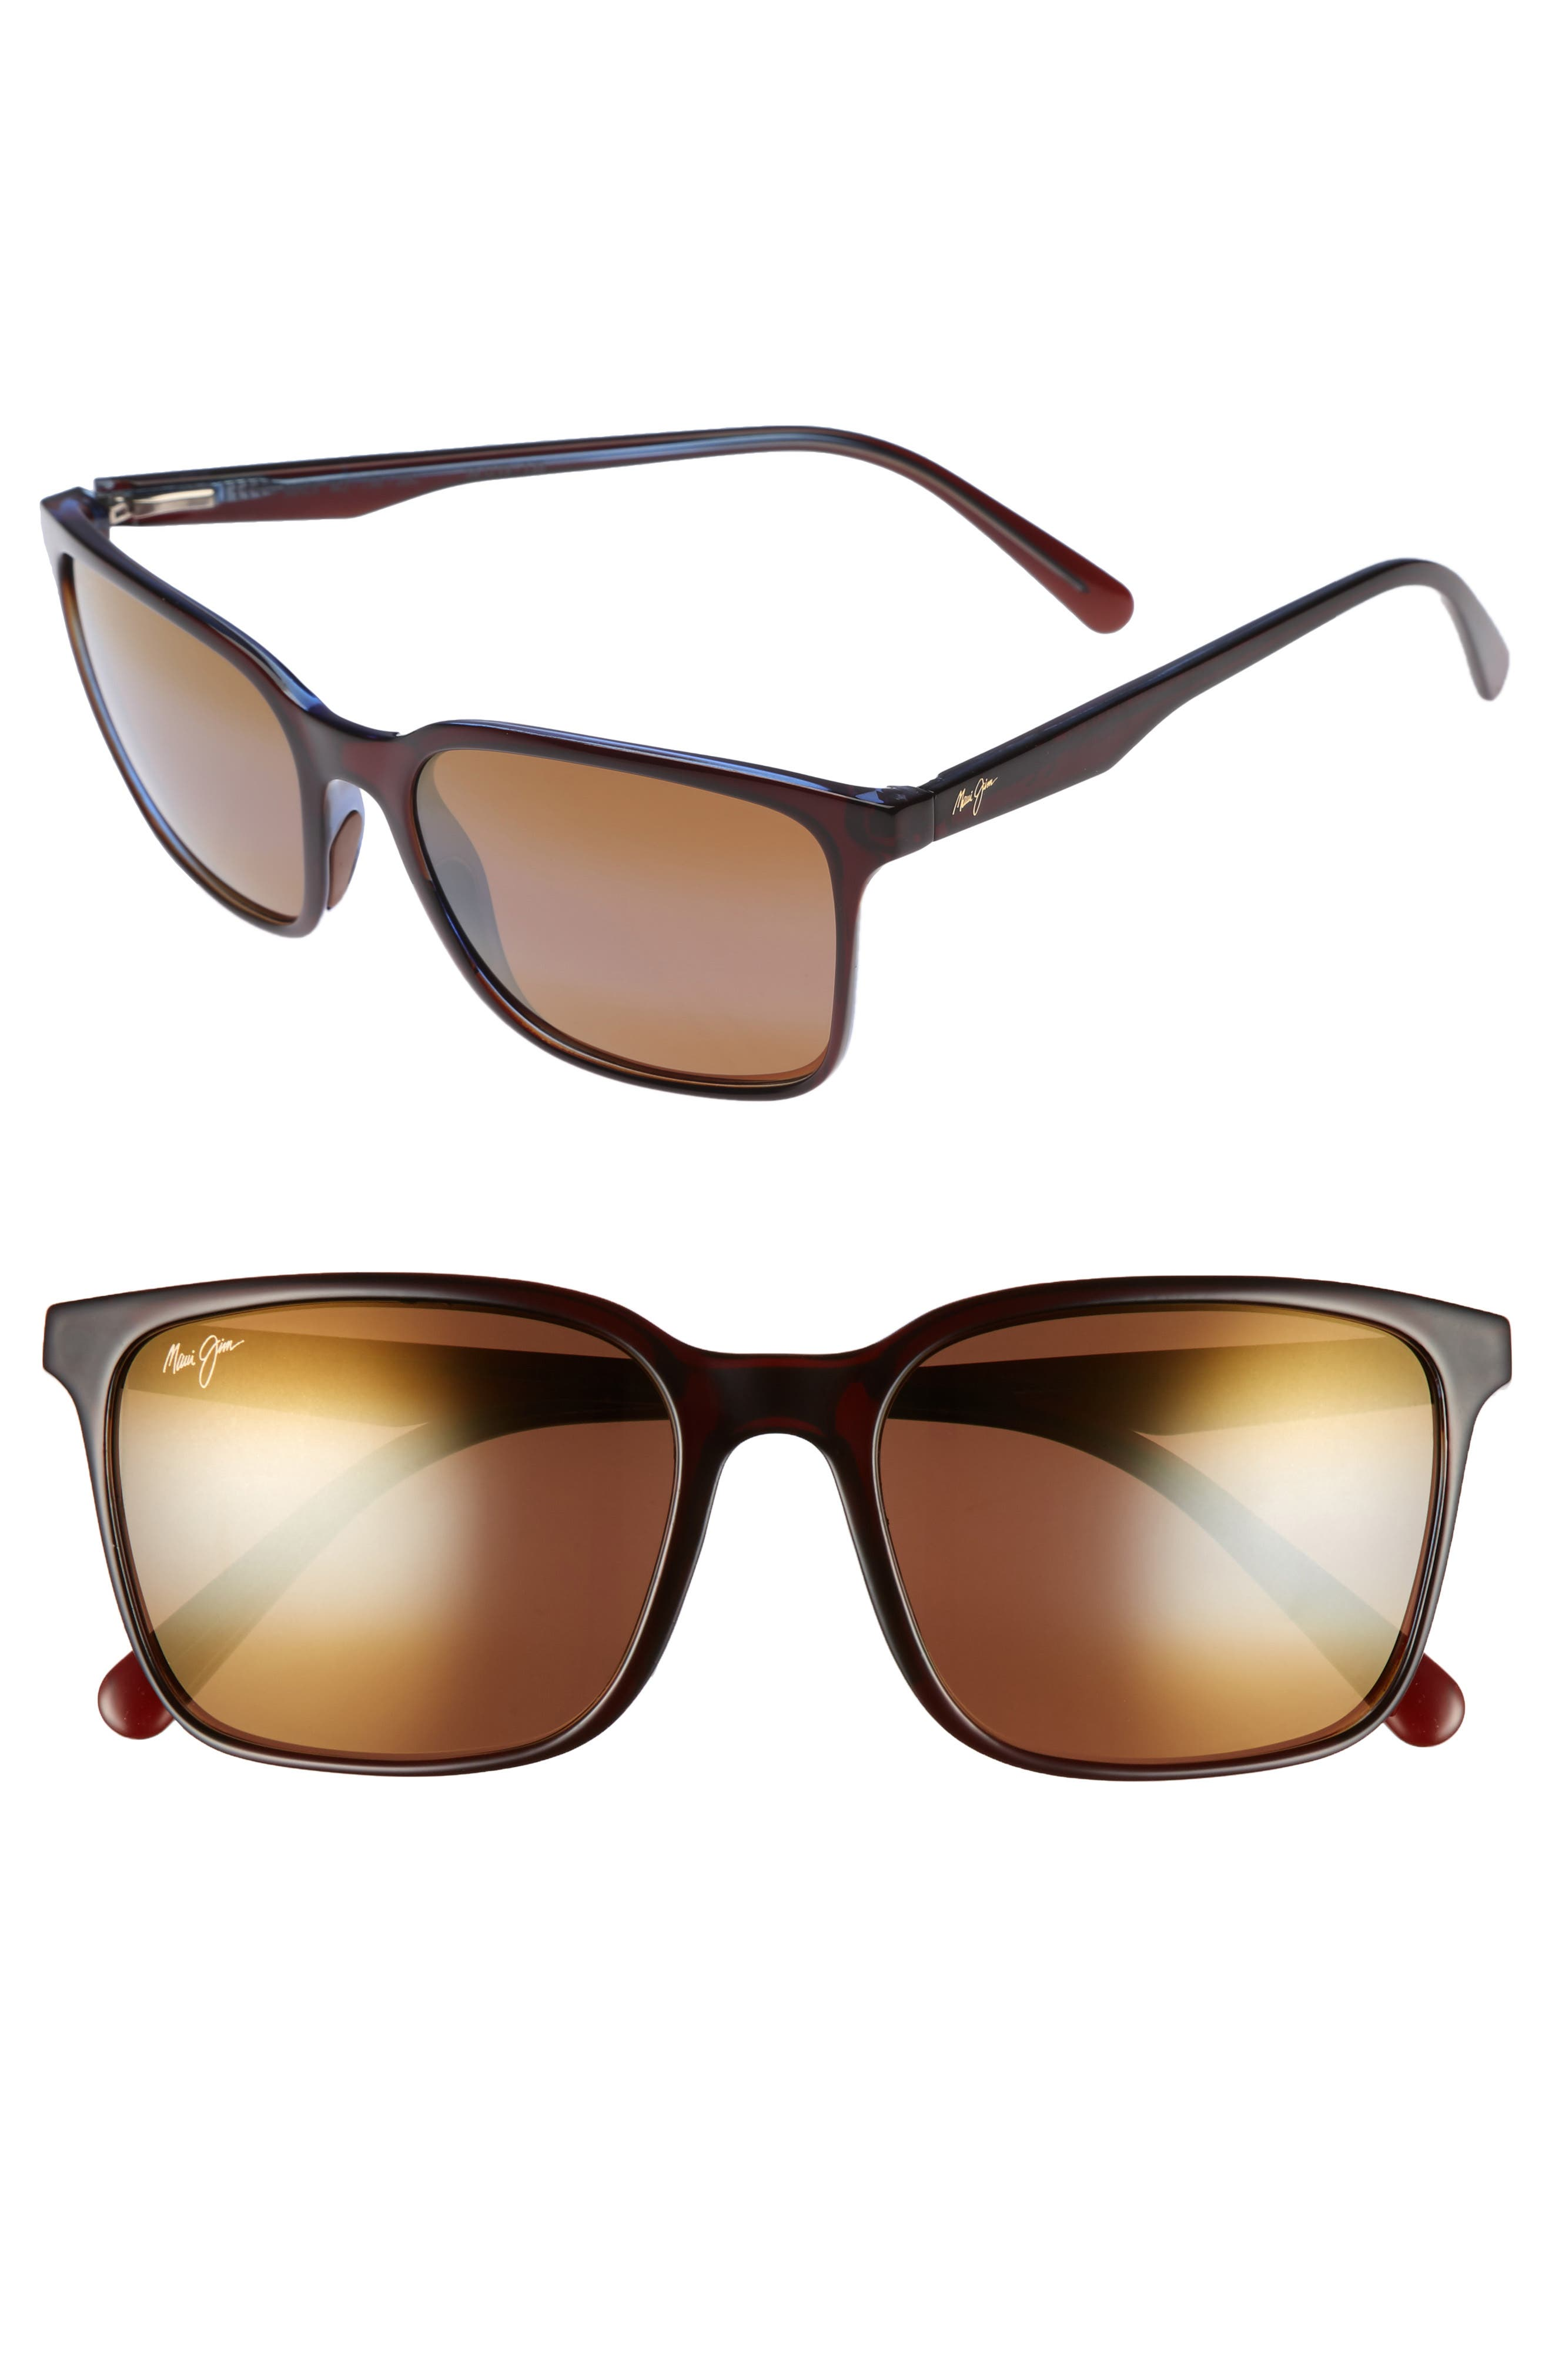 Wild Coast 56mm Polarized Sunglasses,                         Main,                         color, ROOT BEER BLUE/ BRONZE